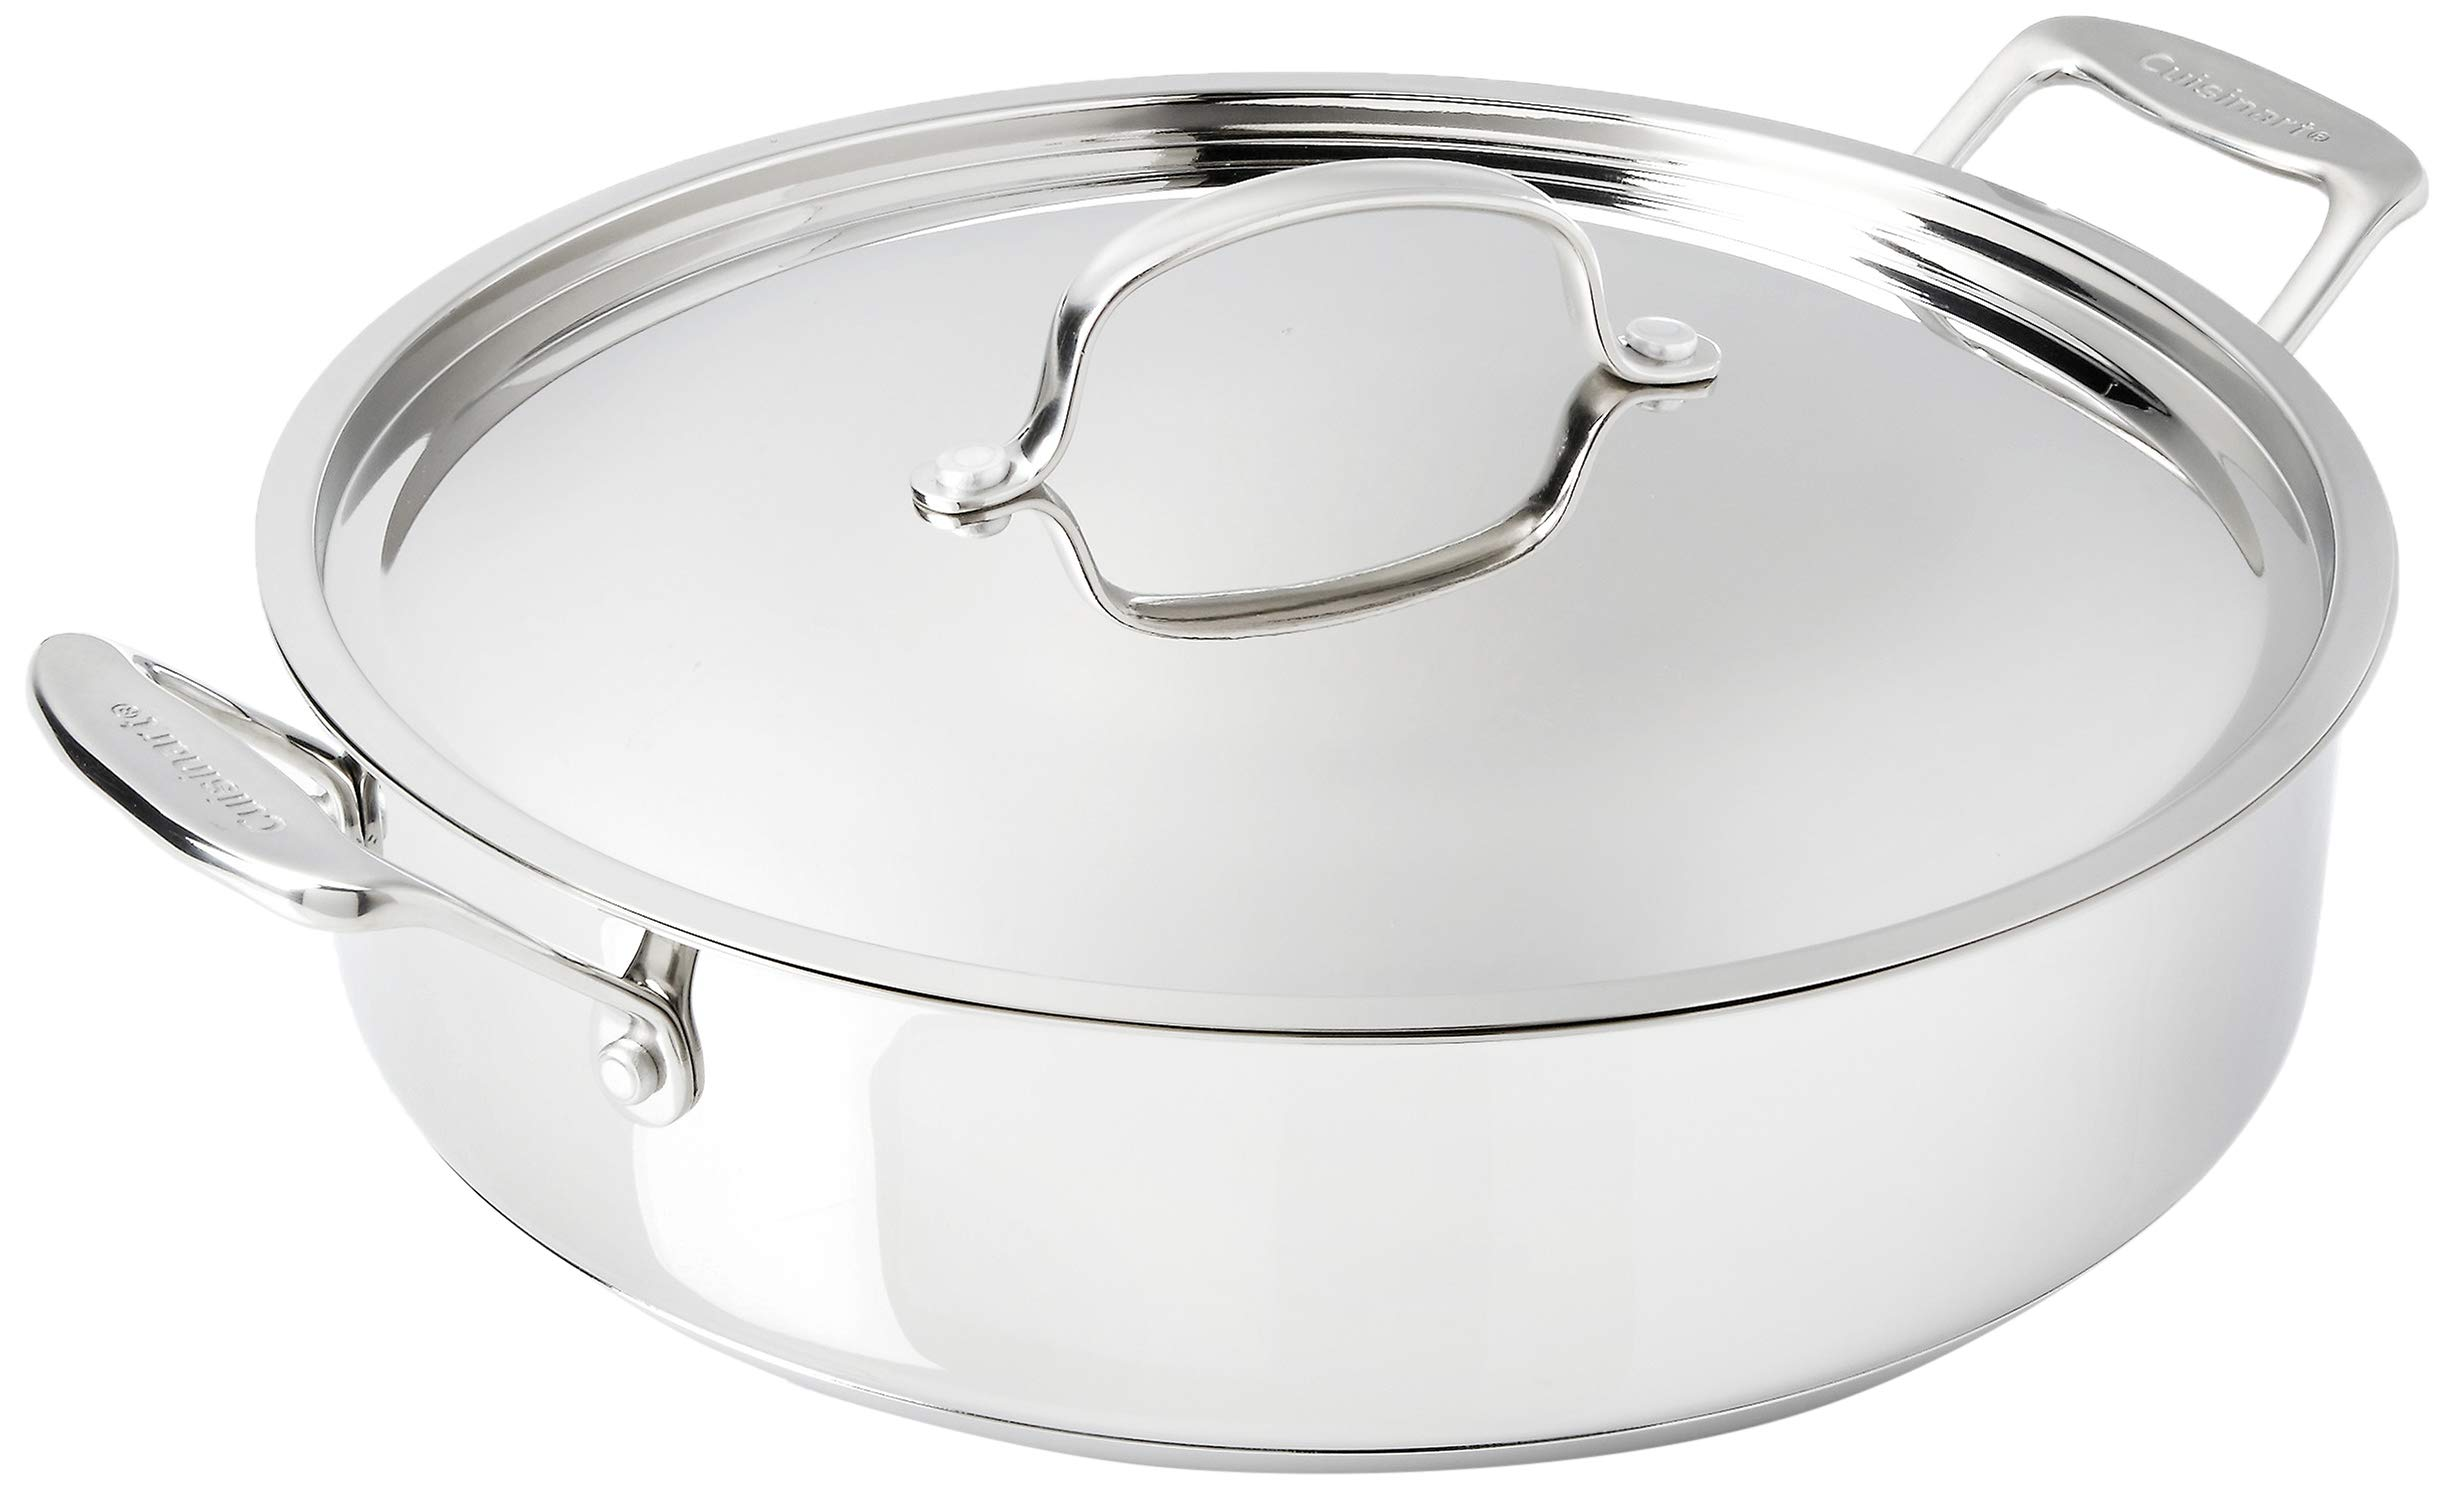 Cuisinart 733-30HW Chef's Classic 5.5 Qt. Braising Pan with Cover, Medium, Stainless Steel by Cuisinart